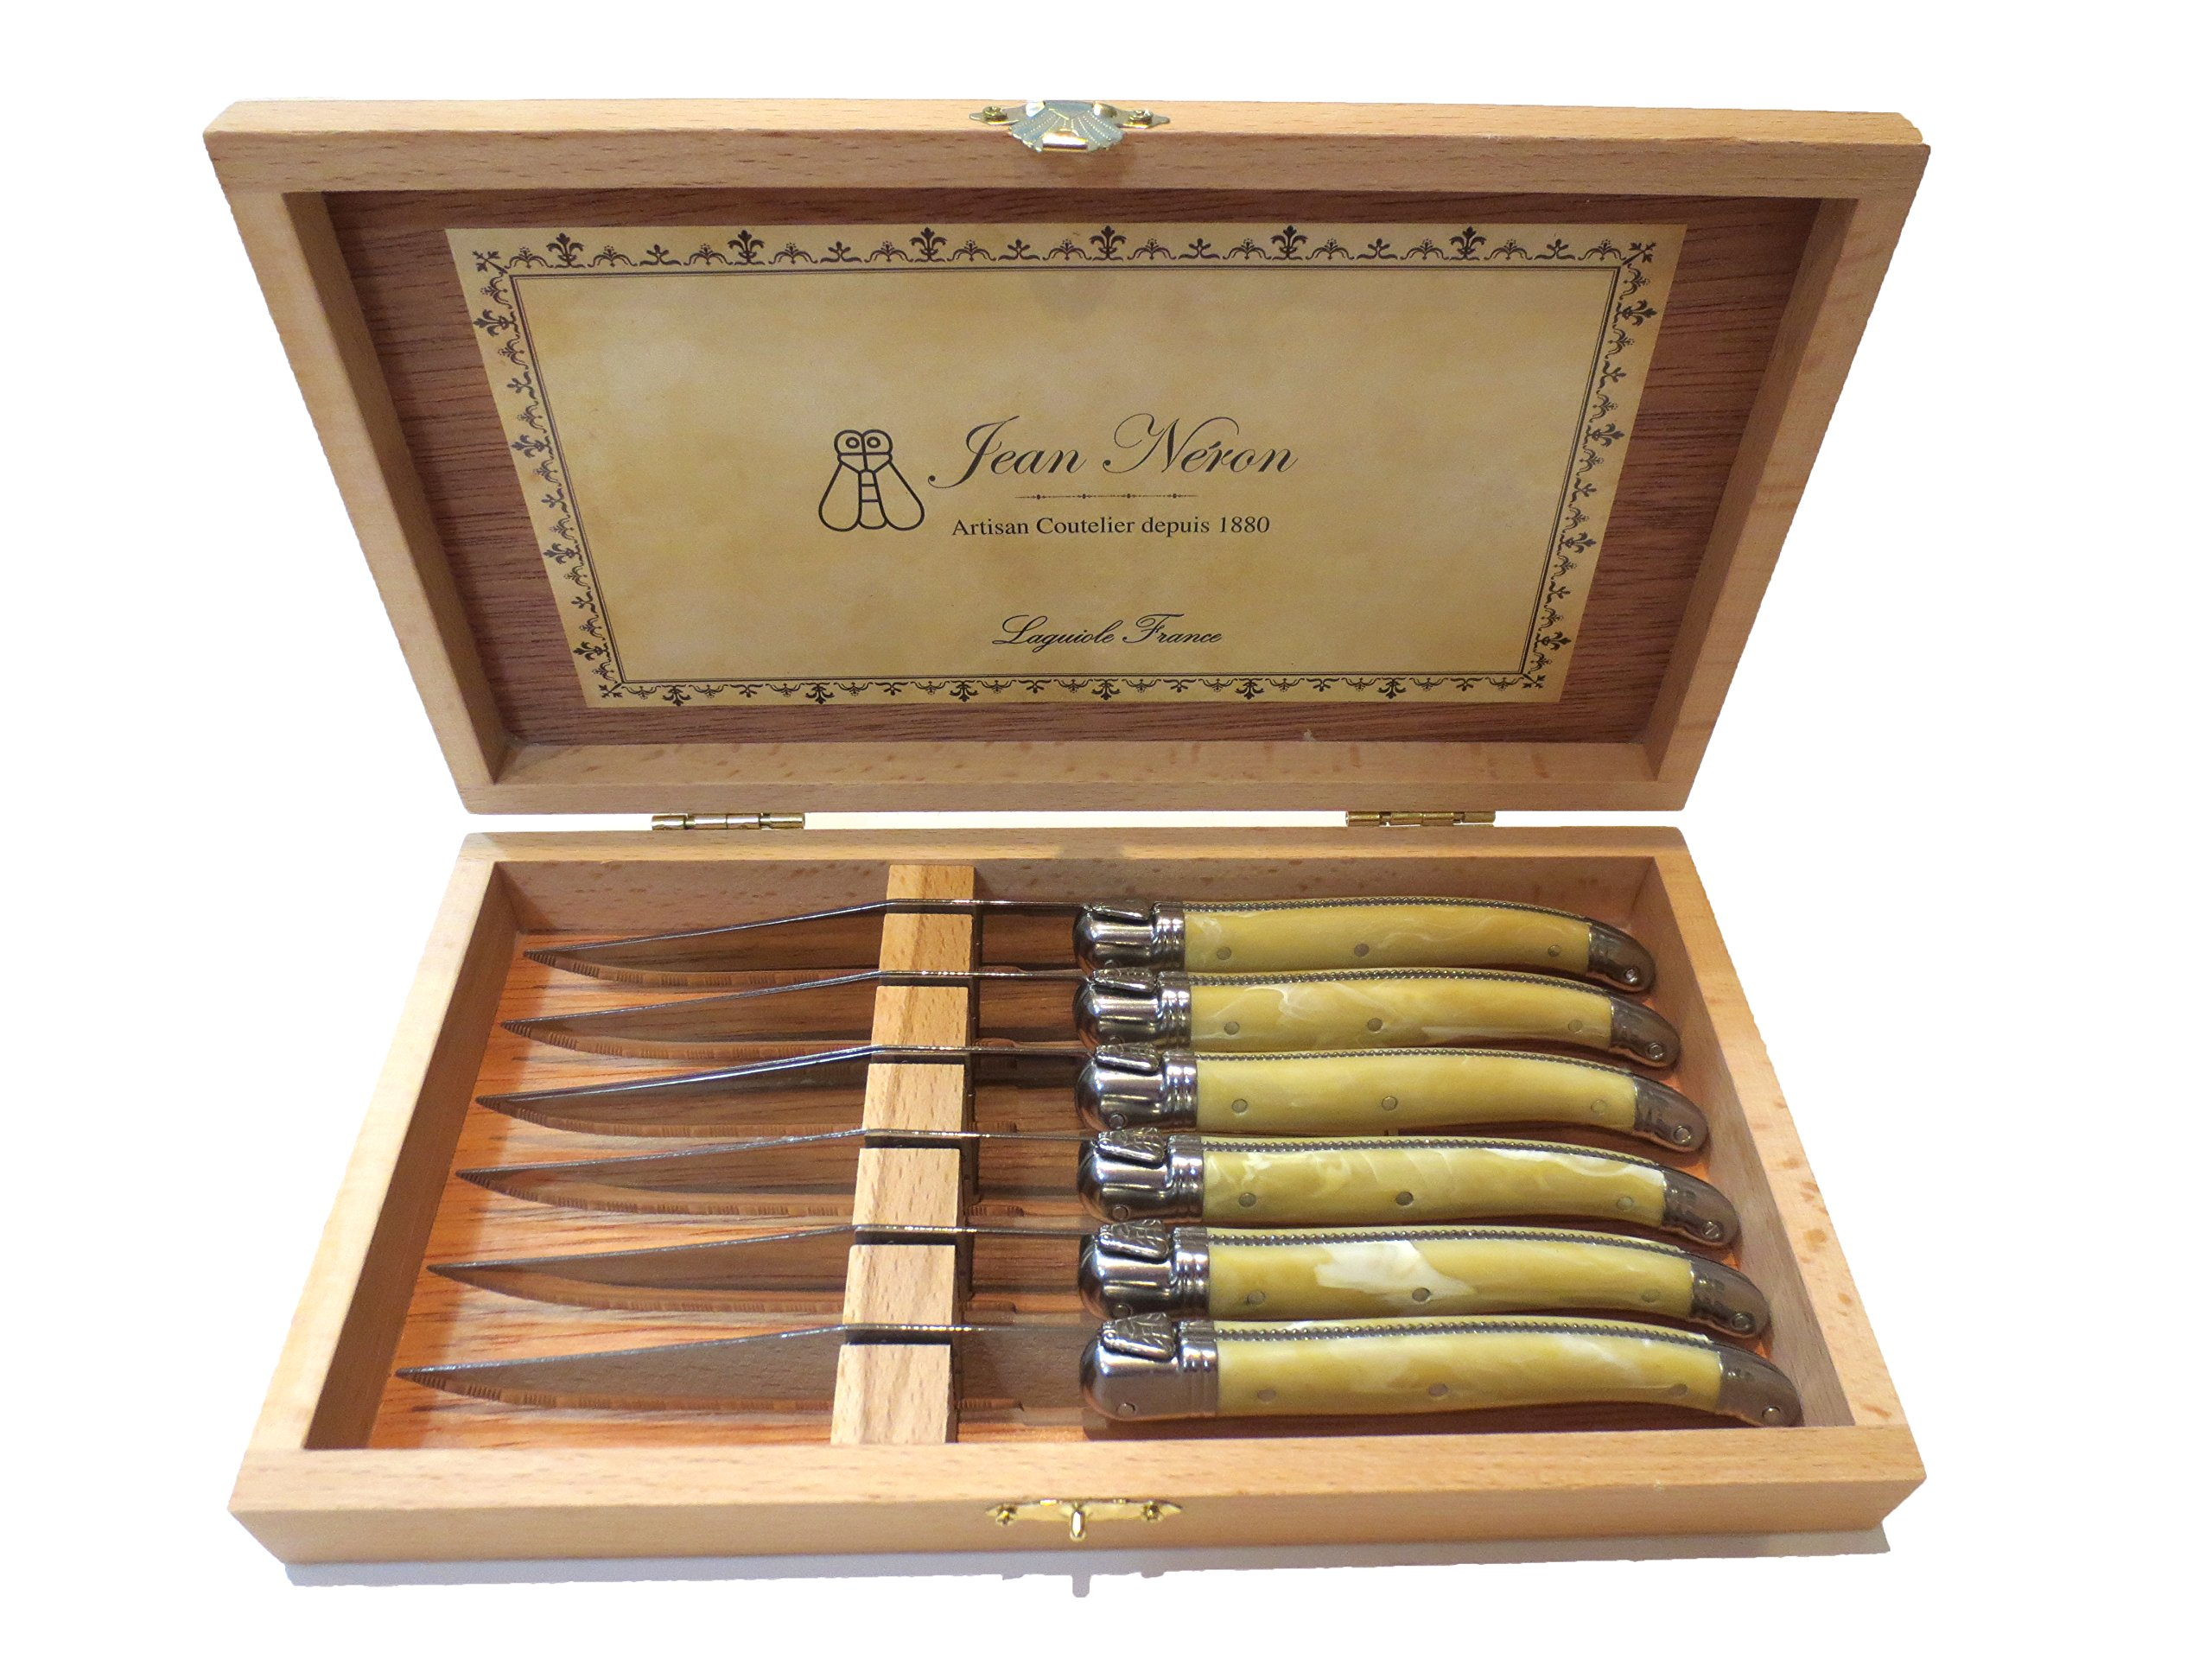 Laguiole Pale Horn Platine Knives in Presentation Box (Set of 6) by Laguiole France, Jean Neron (Image #1)